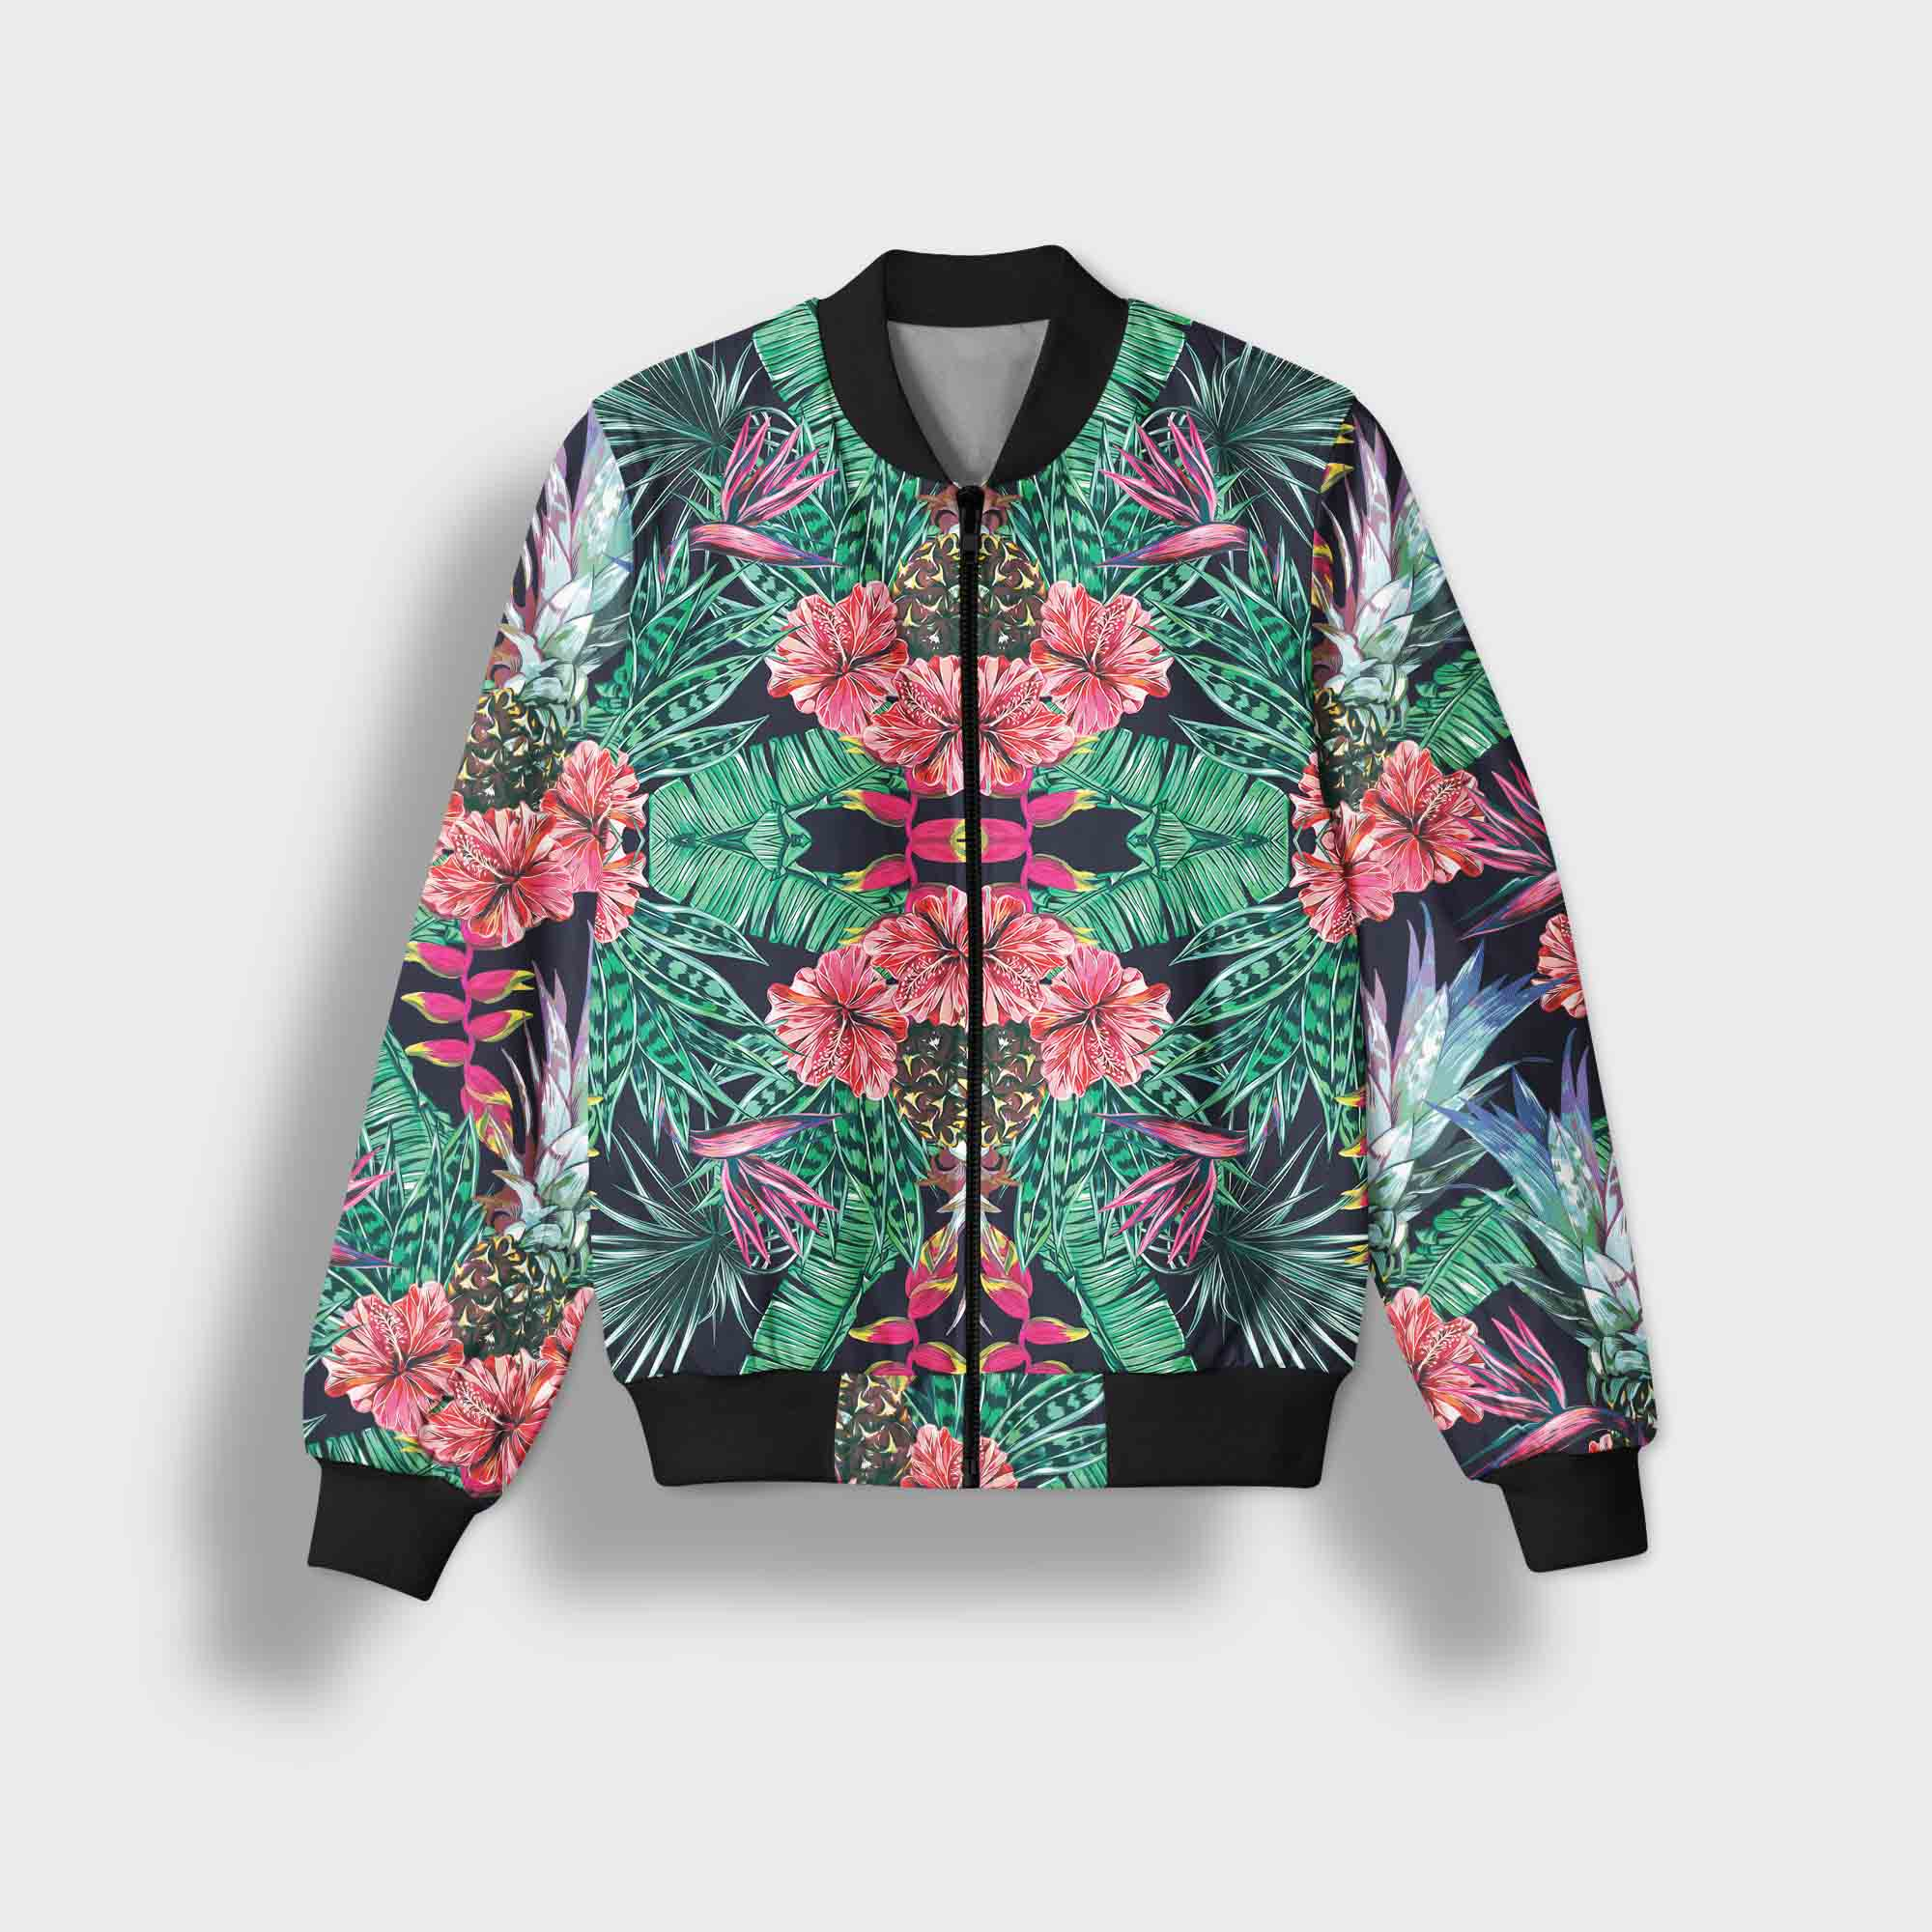 Supplycoid Shop Line Jaket Bomber Hitam Supply Eropa Fashion Style Two Wanita Pria Hijau Putih Flower